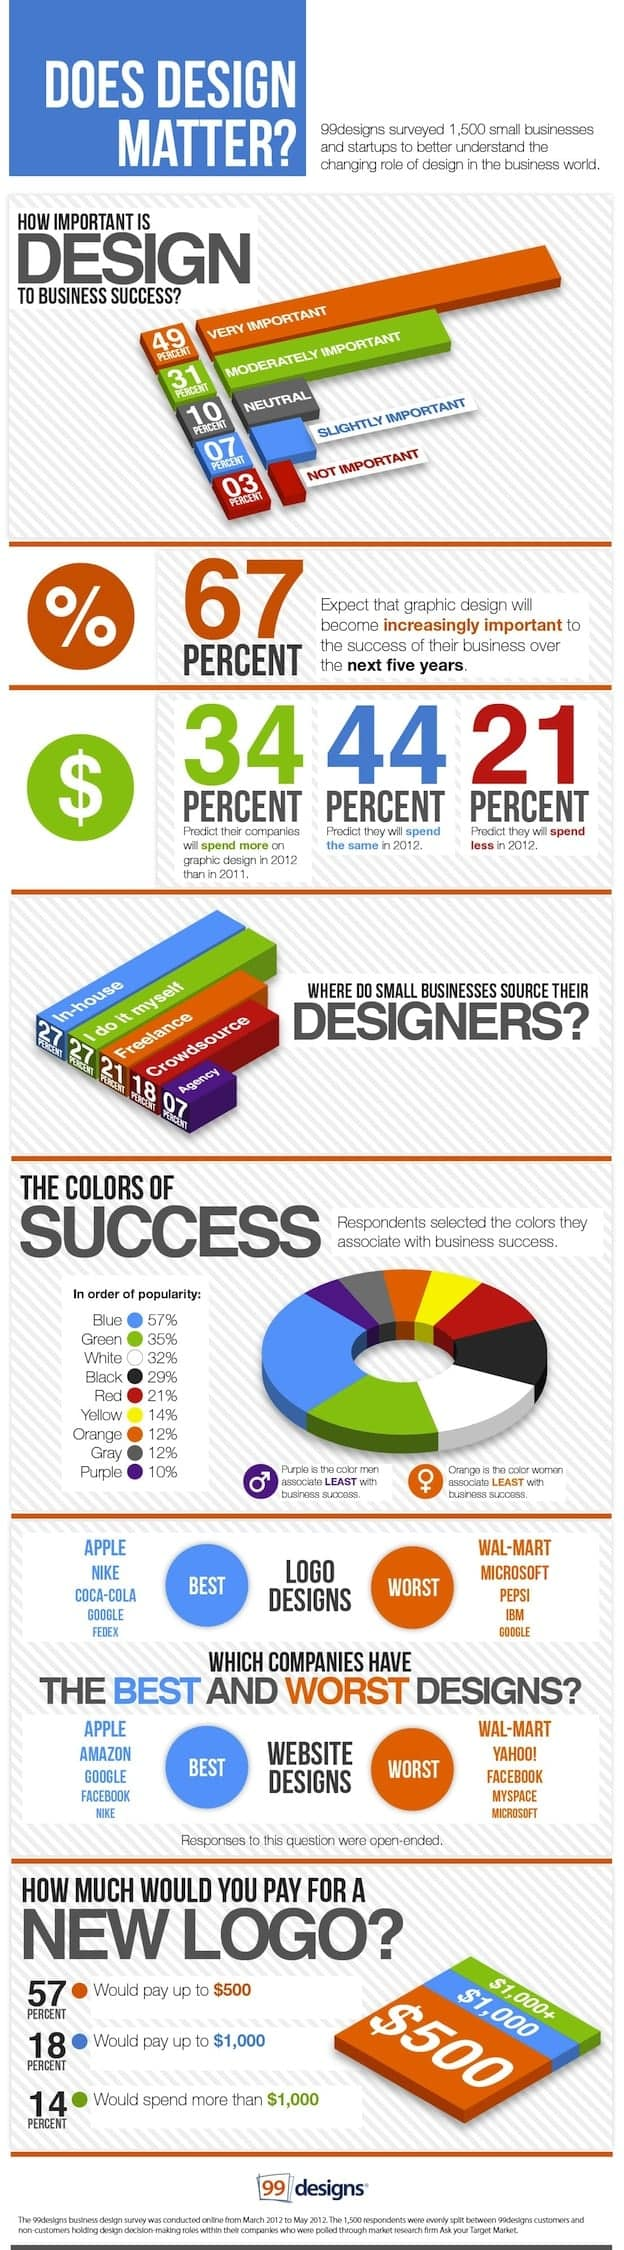 does graphic design matters infographic